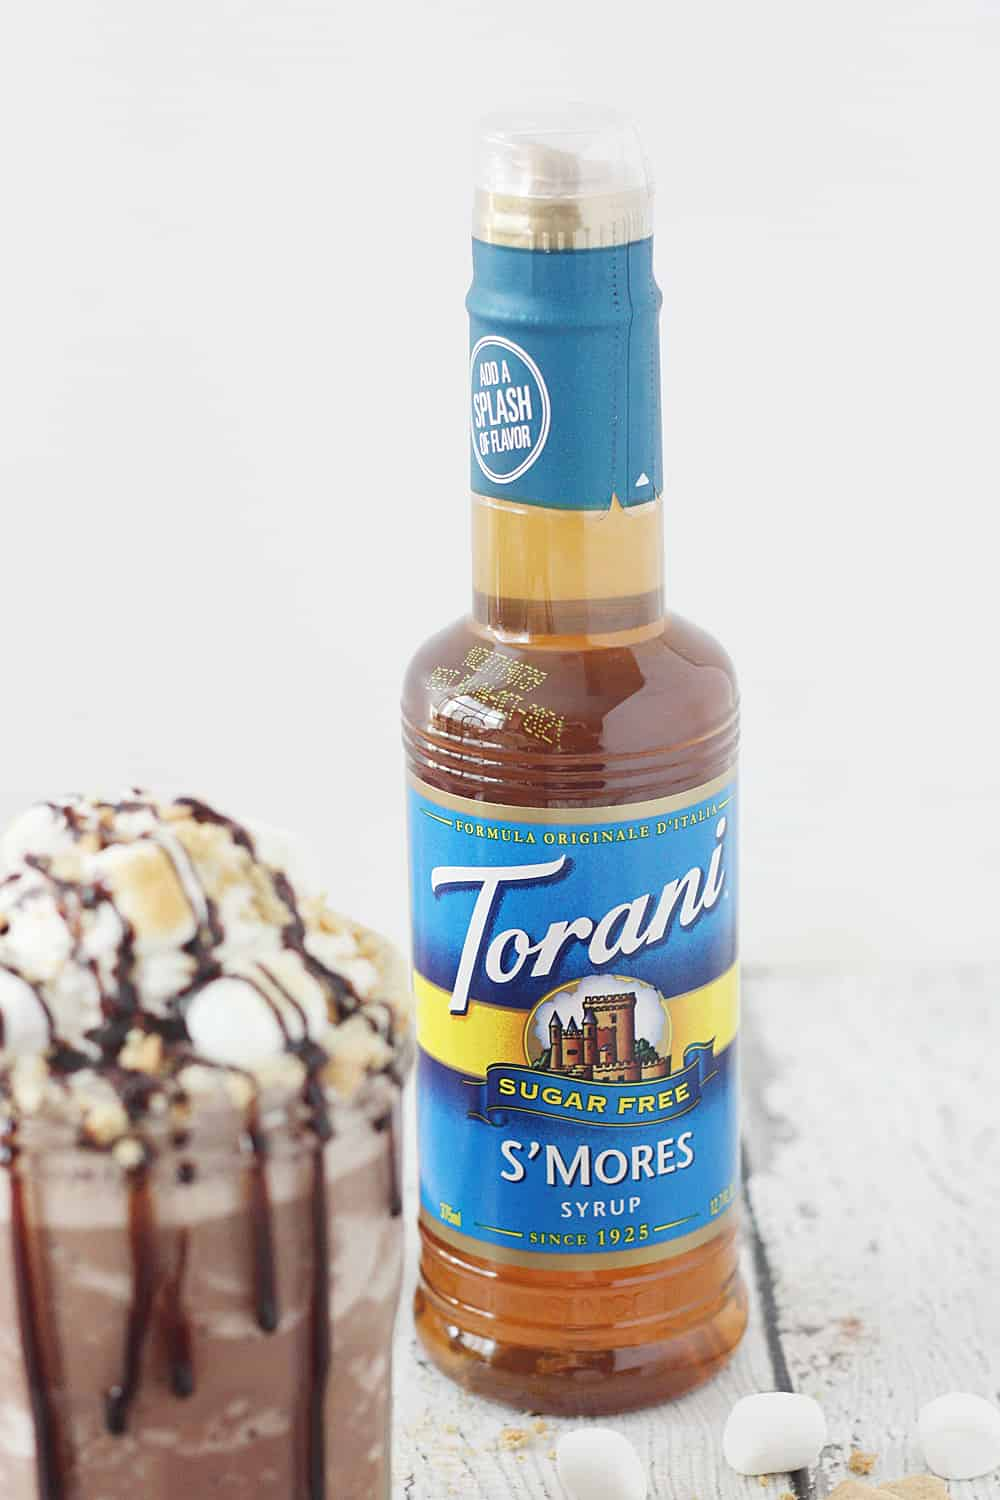 Guilt-Free S'mores Frozen Hot Chocolate - Hot drinks during winter are nice, but sometimes all you want is an icy glass of guilt-free s'mores frozen hot chocolate! #hotchocolate #frozenhotchocolate #torani #aguiltfreeholiday #ad #halfscratched #smores #dessert #drinkrecipe #holidayrecipe